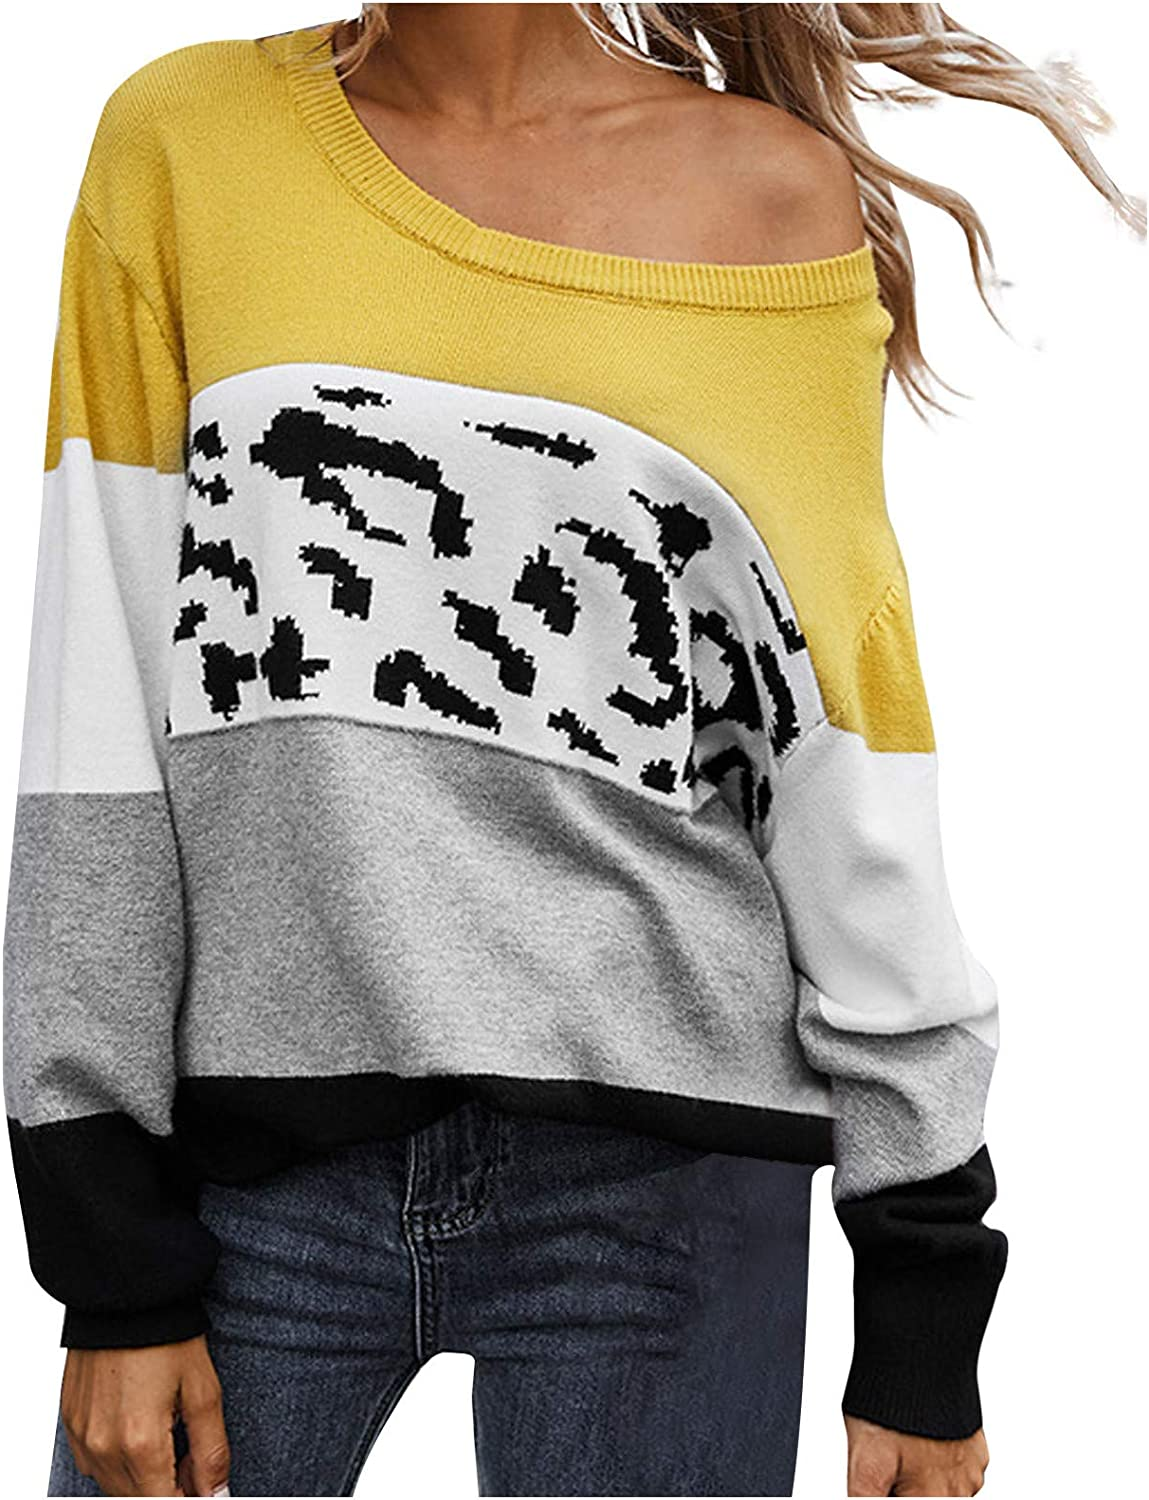 Womens Crew Neck Sweater Loose Patchwork Color Block Sweatershirt Long Sleeve Pullover Casual Comfy Jumper Blouse